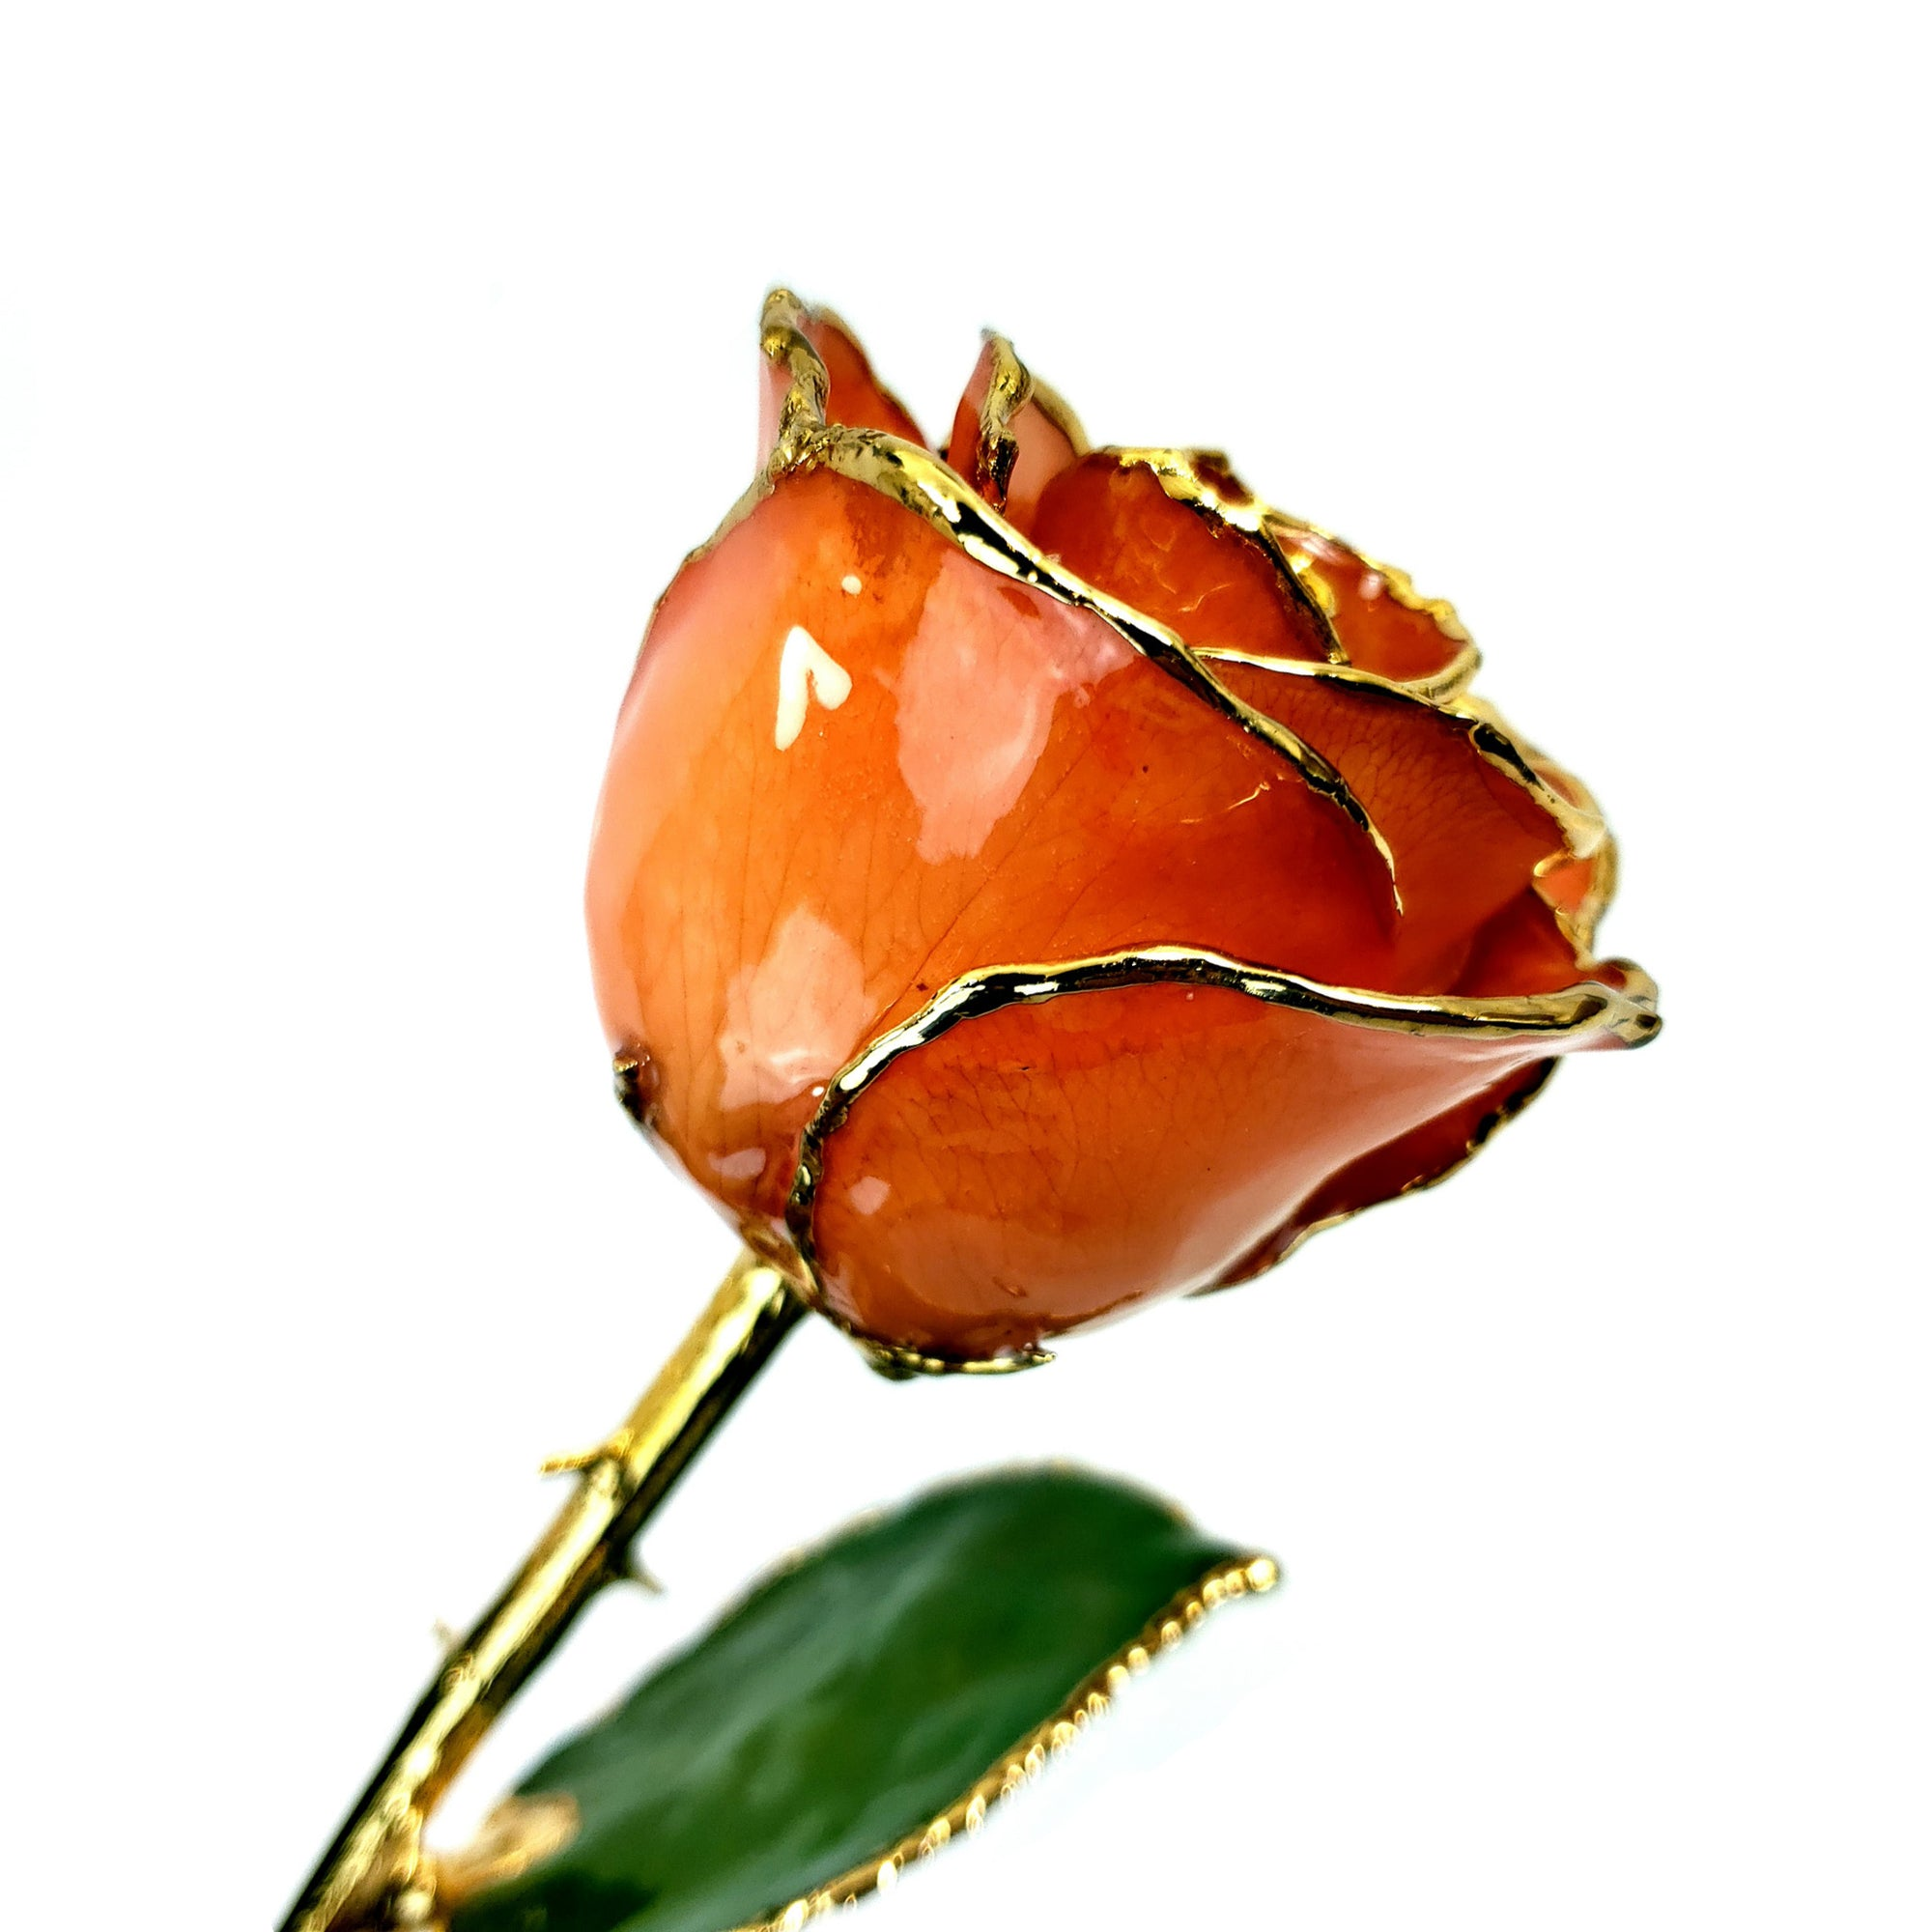 24K Gold Trimmed Forever Rose with Orange Petals. View of Stem, Leaves, and Rose Petals and Showing Detail of Gold Trim